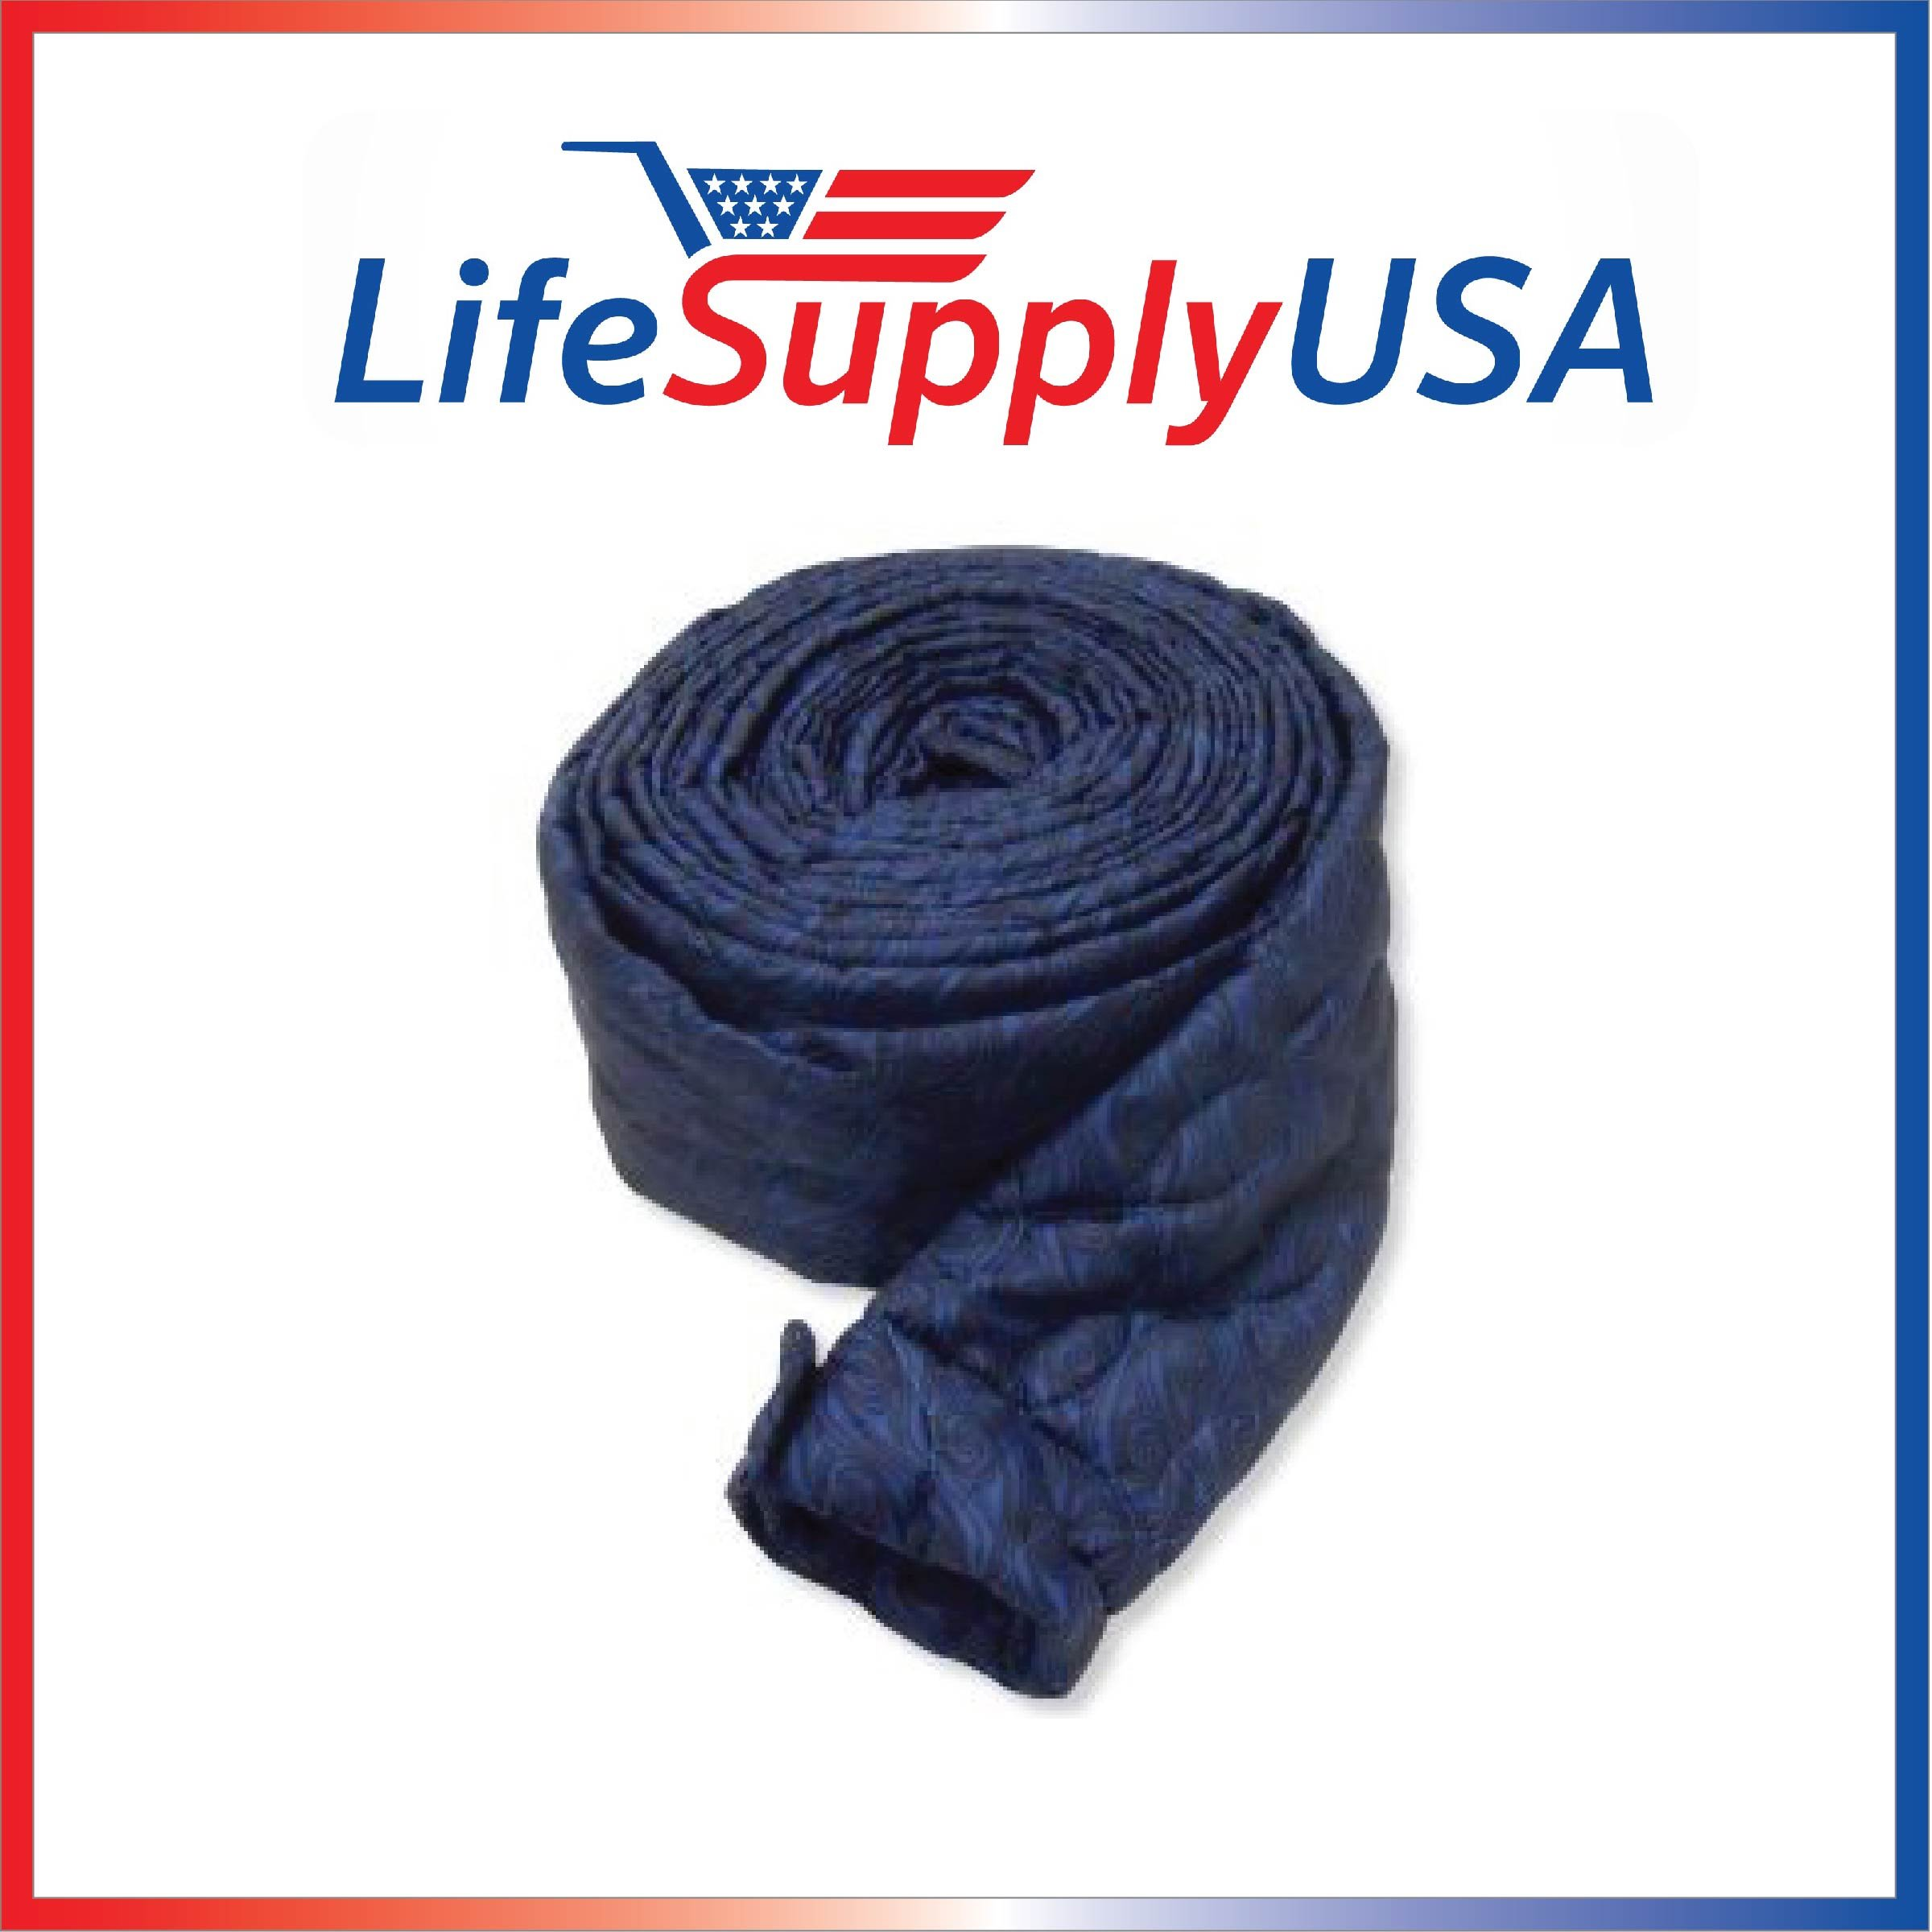 Central Vacuum Padded Hose Cover - 30 ft length by LifeSupplyUSA